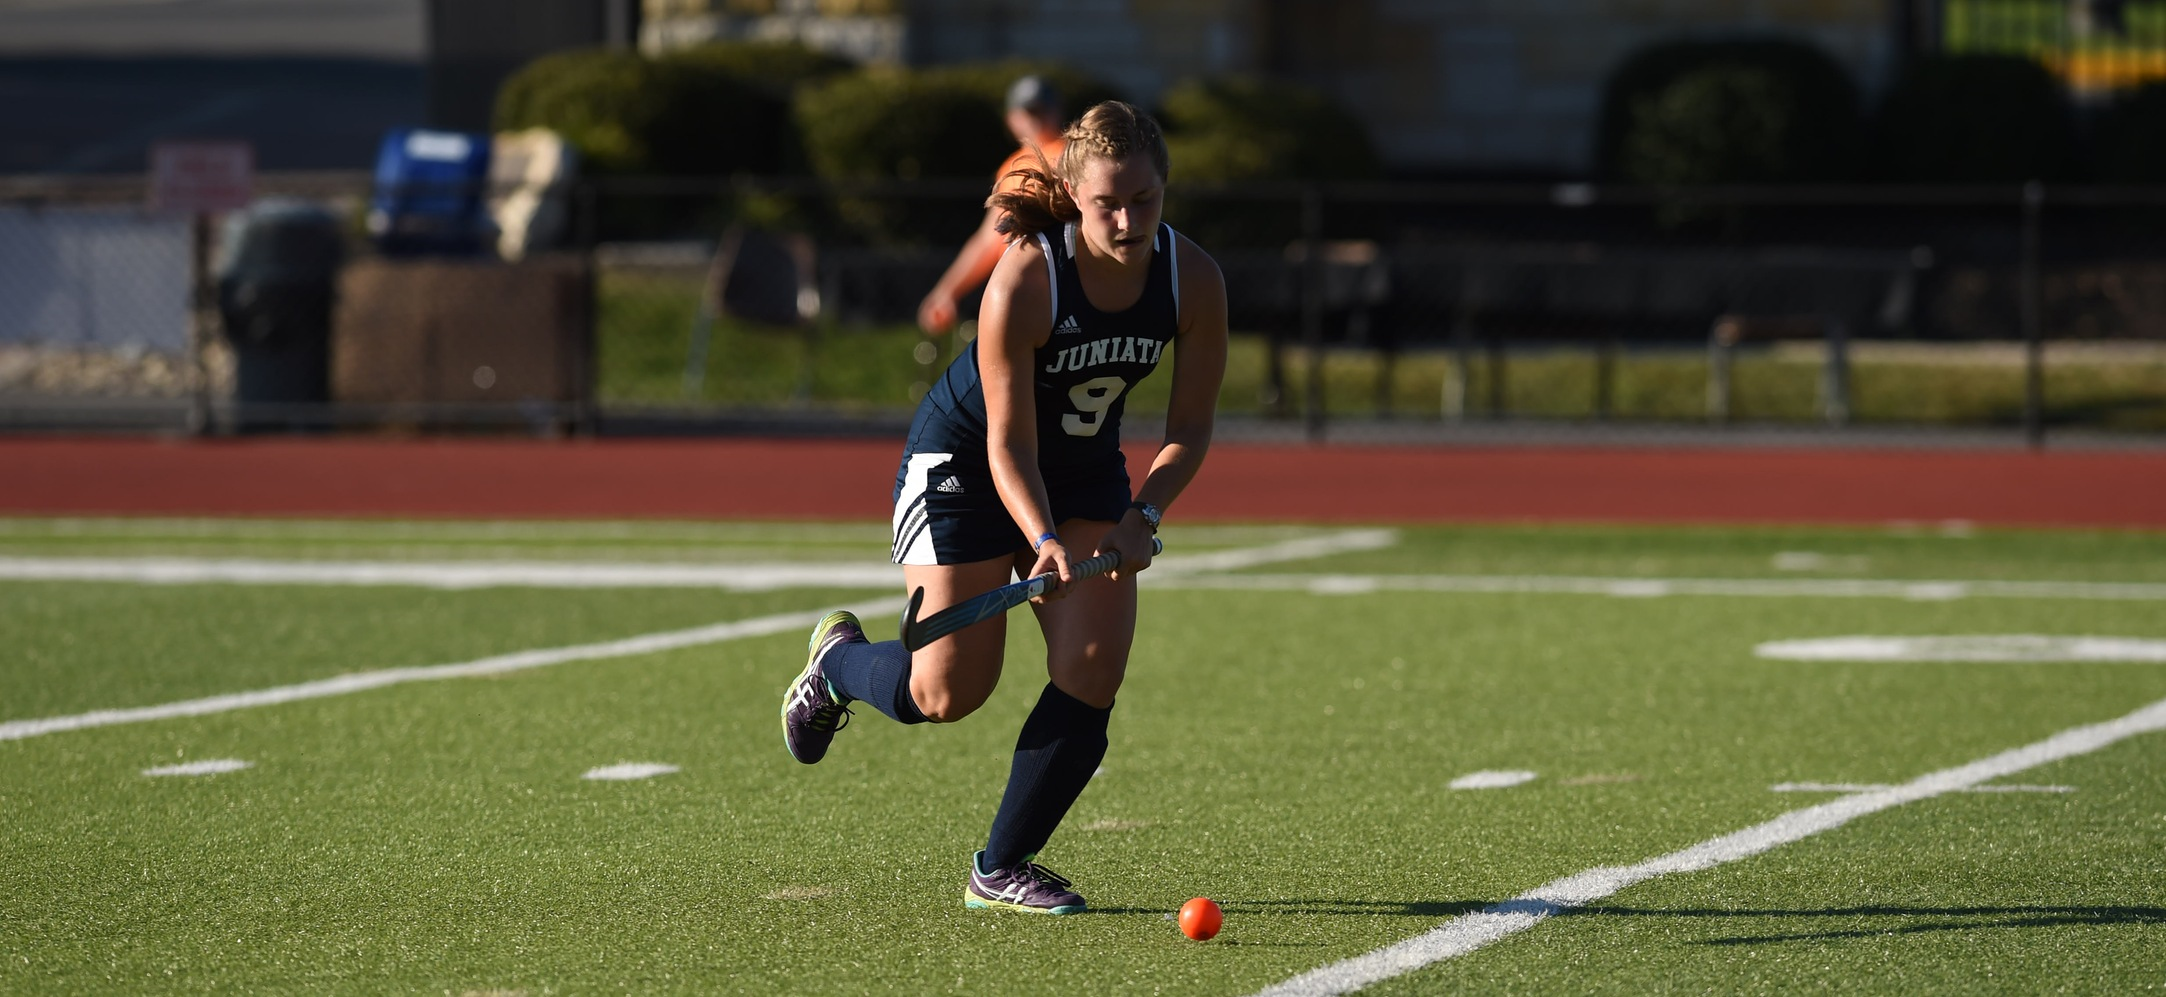 Meredith Shephard scored the lone goal for the Eagles in their first win of the season.